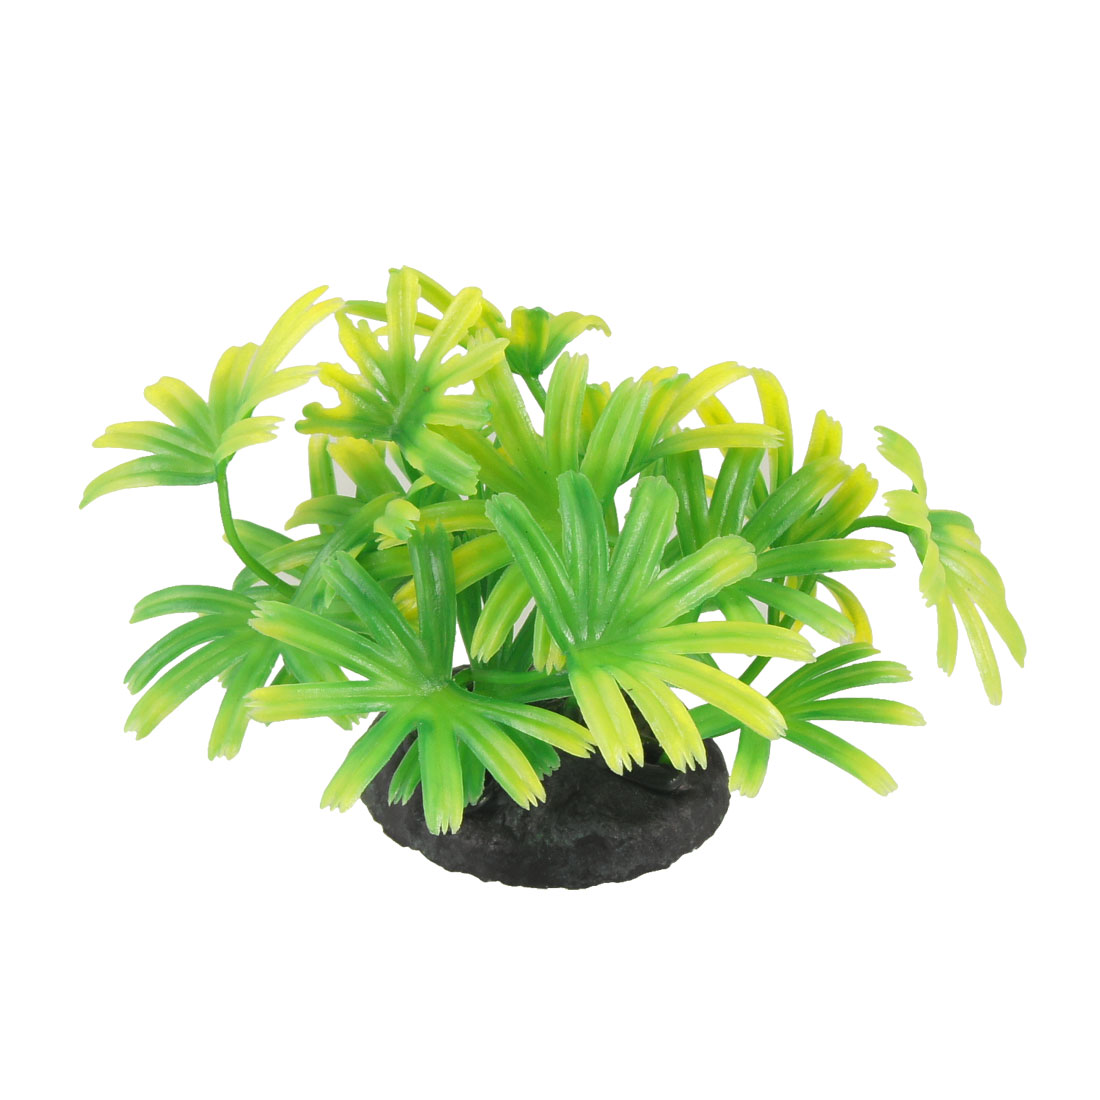 Resin Base Green Yellow Plastic Water Grass Plants for Aquarium Fish Tank